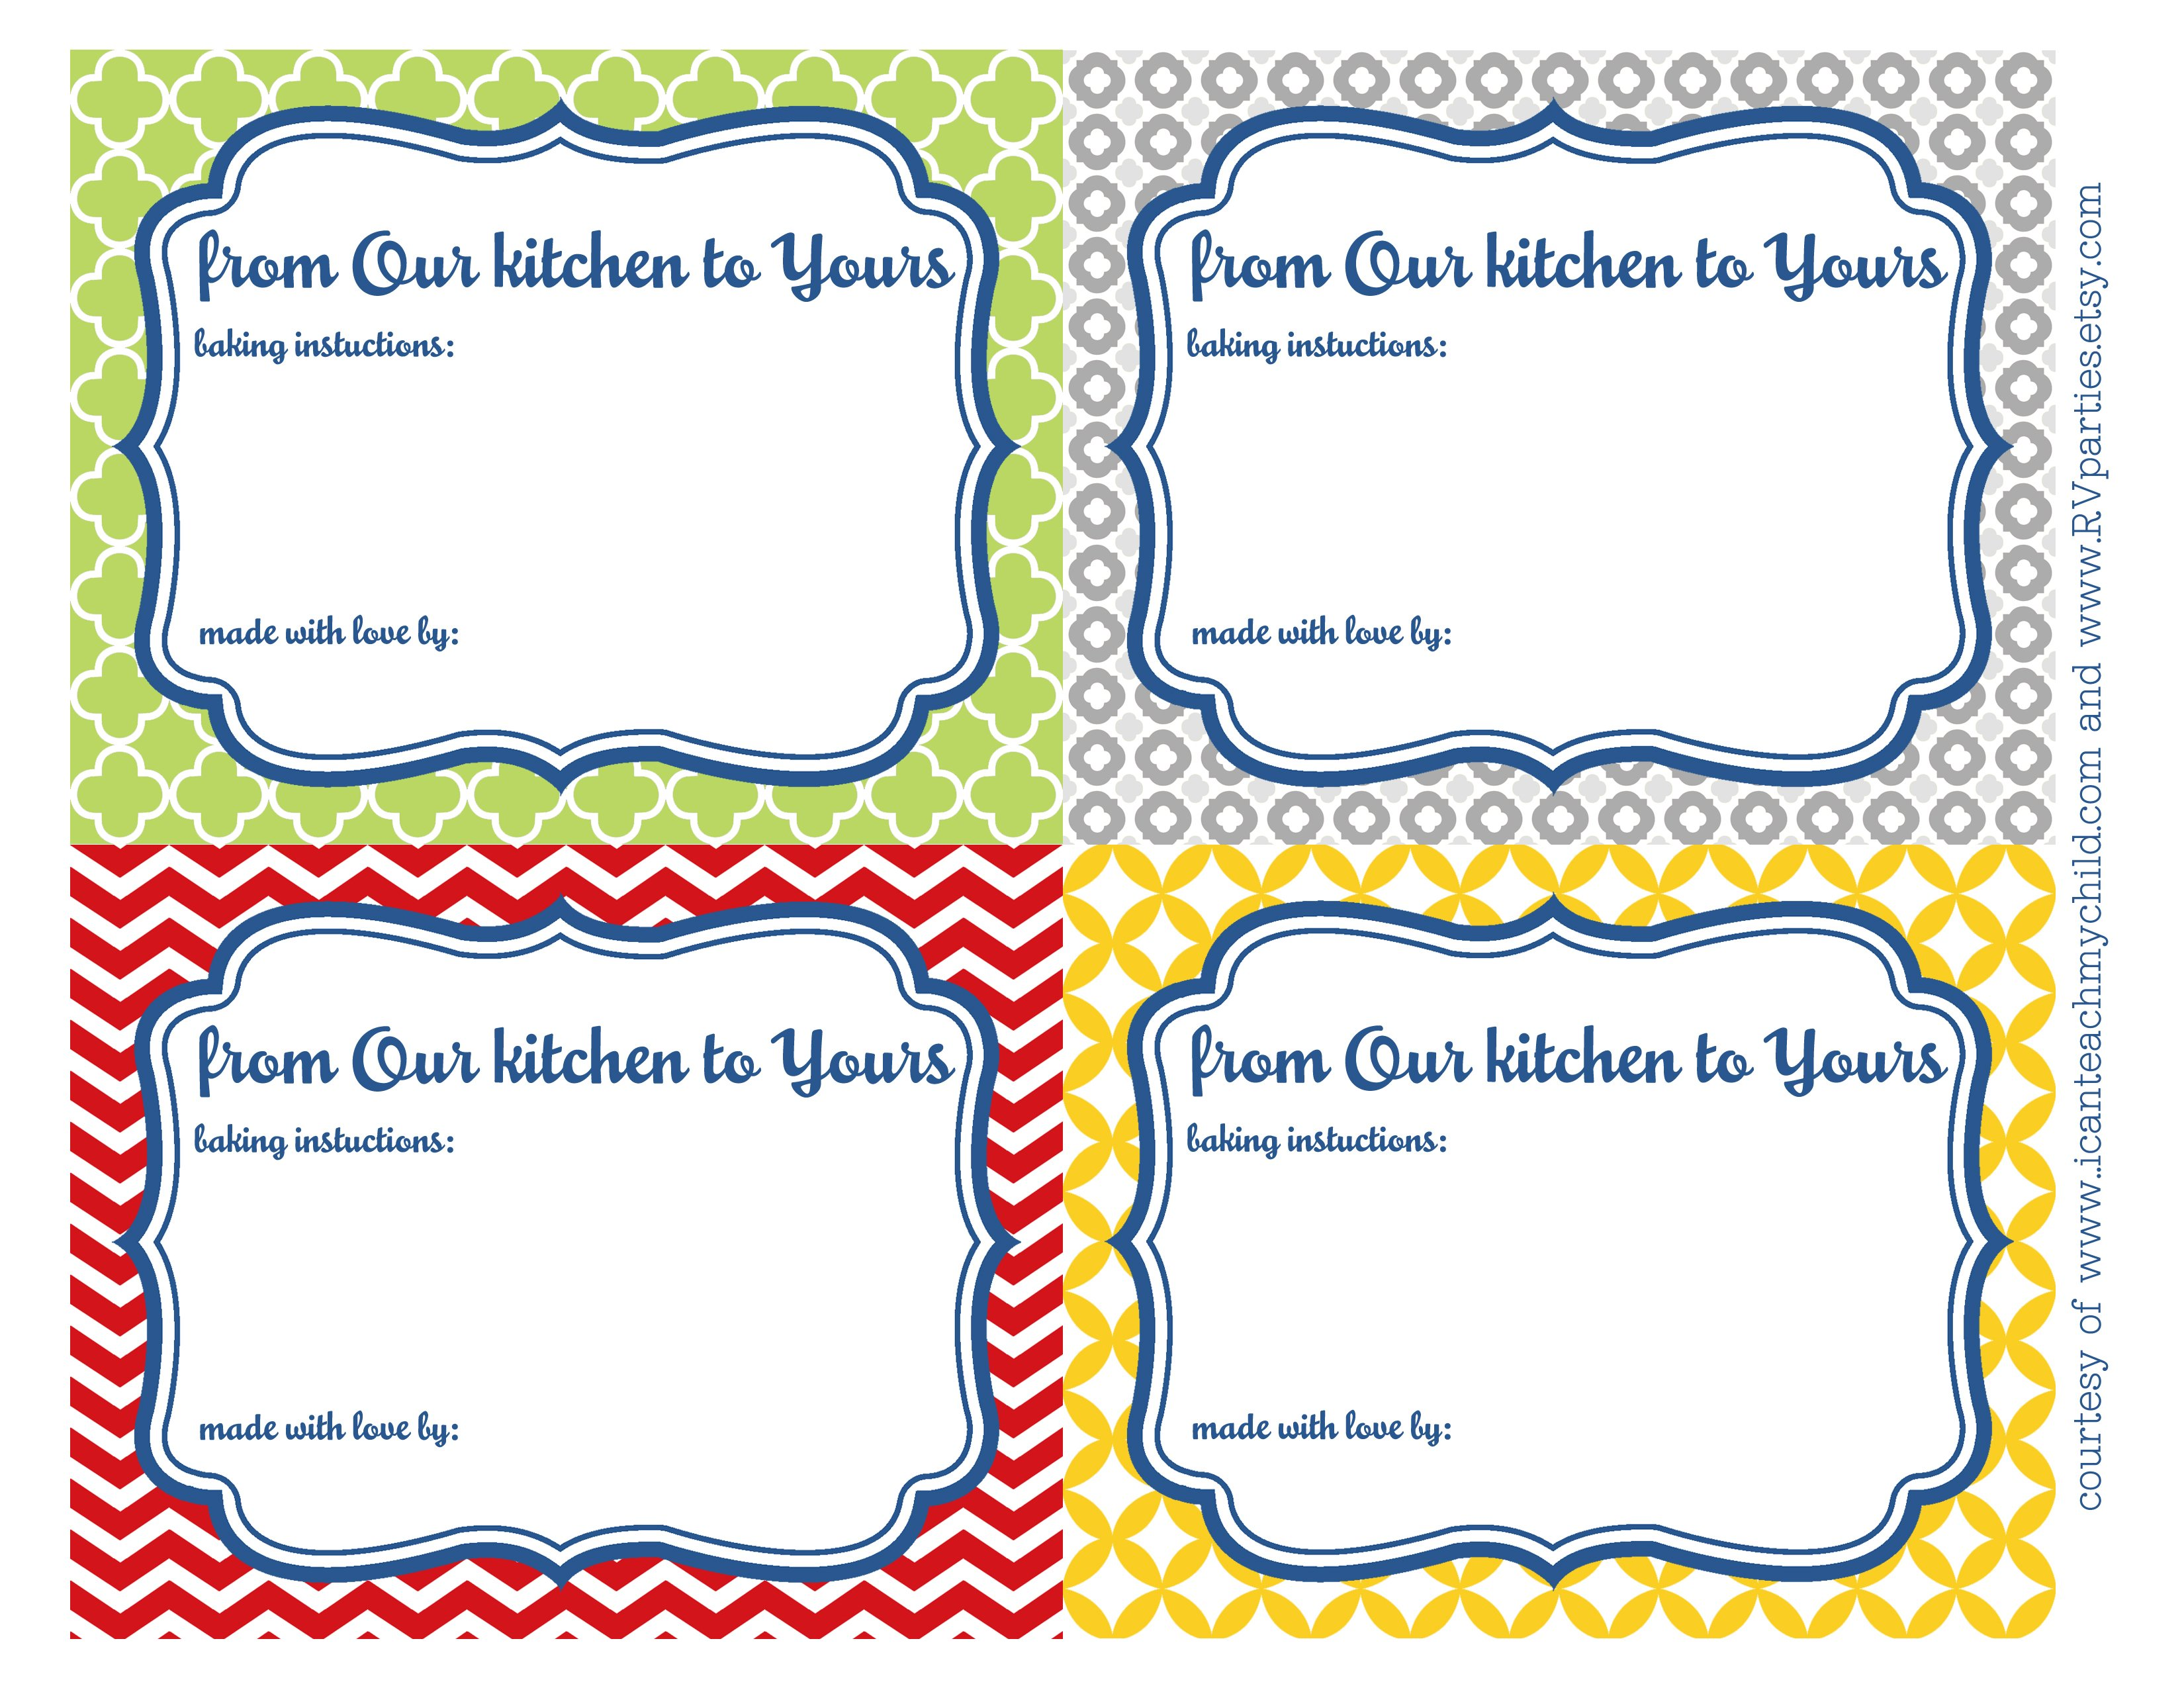 From Our Kitchen to Yours\' Printables - I Can Teach My Child!